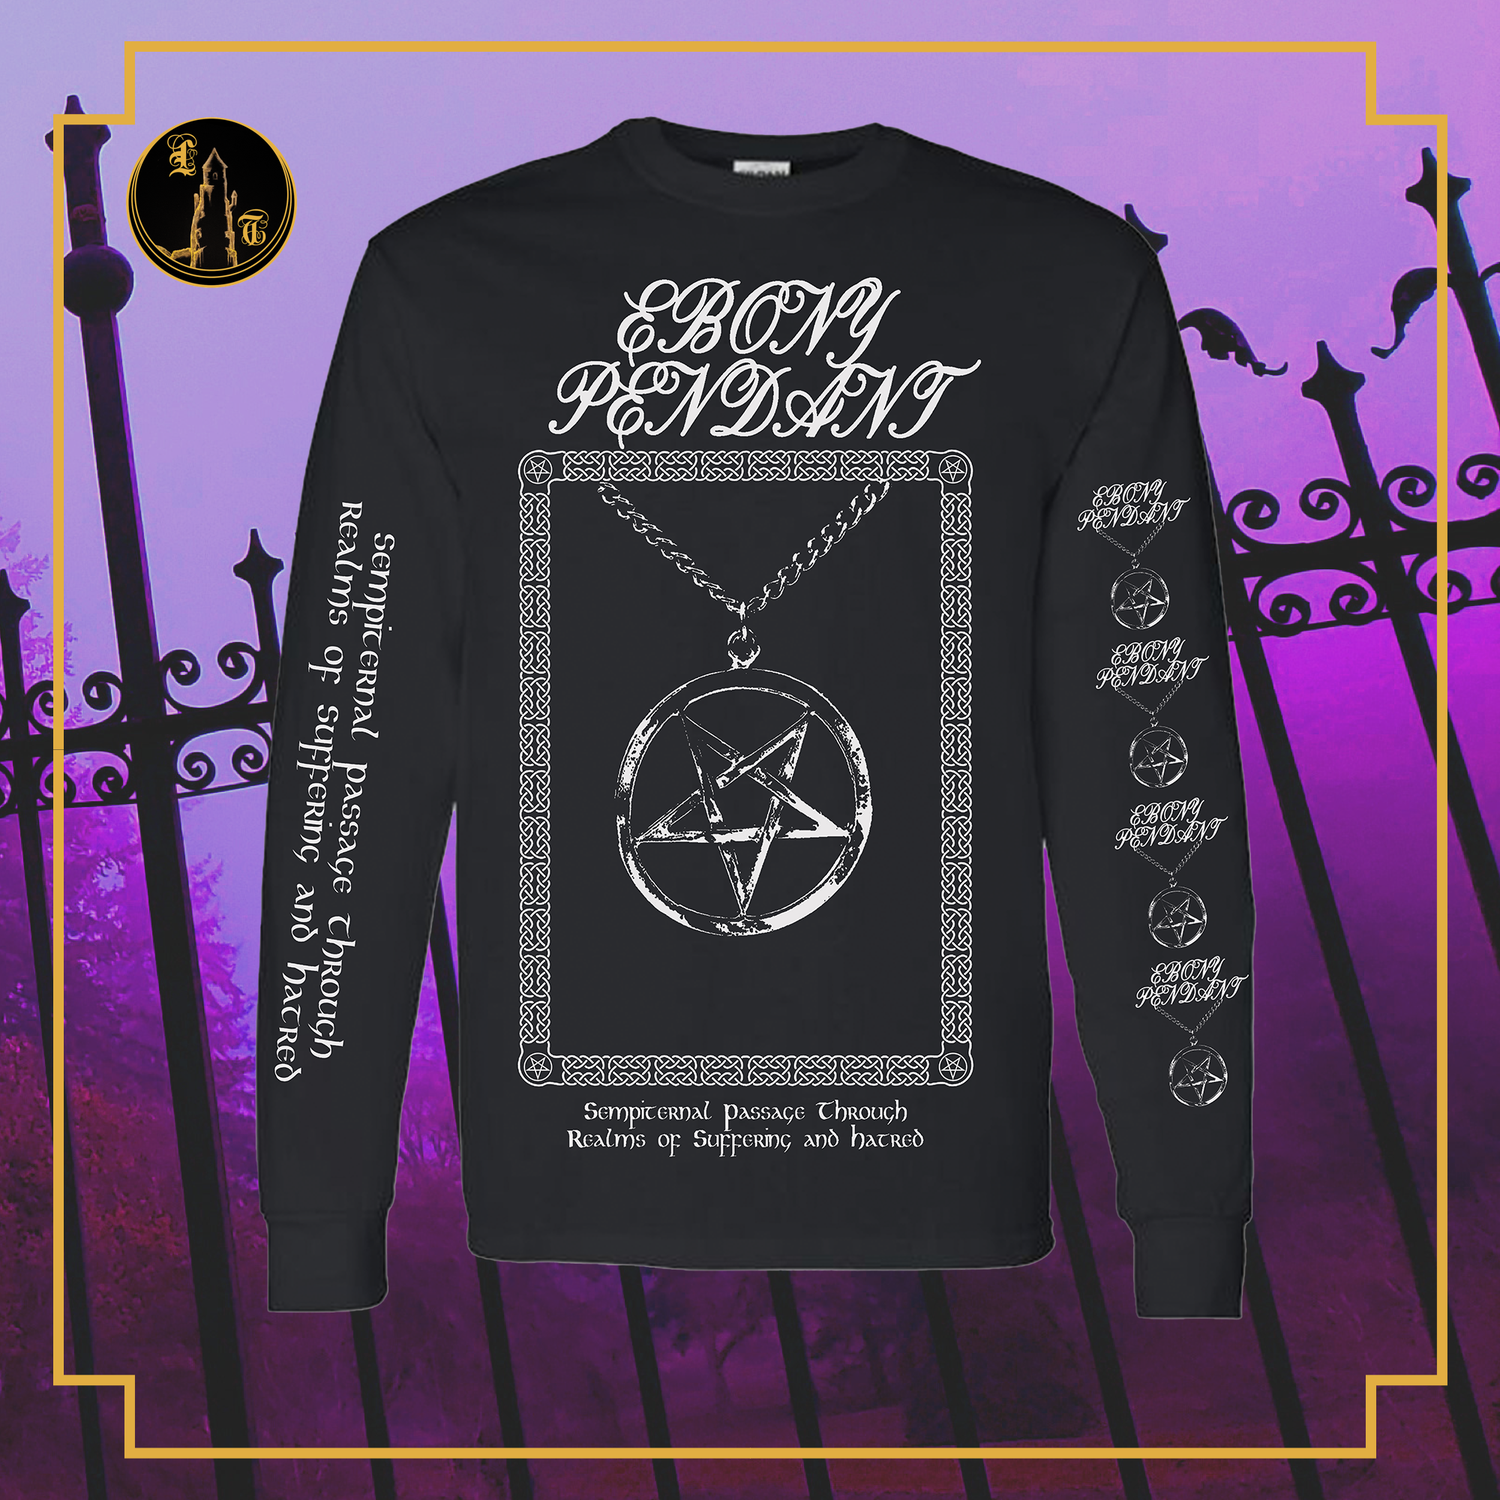 Image of Ebony Pendant - Sempiternal Passsage Through Realms of Suffering and Hatred long sleeve